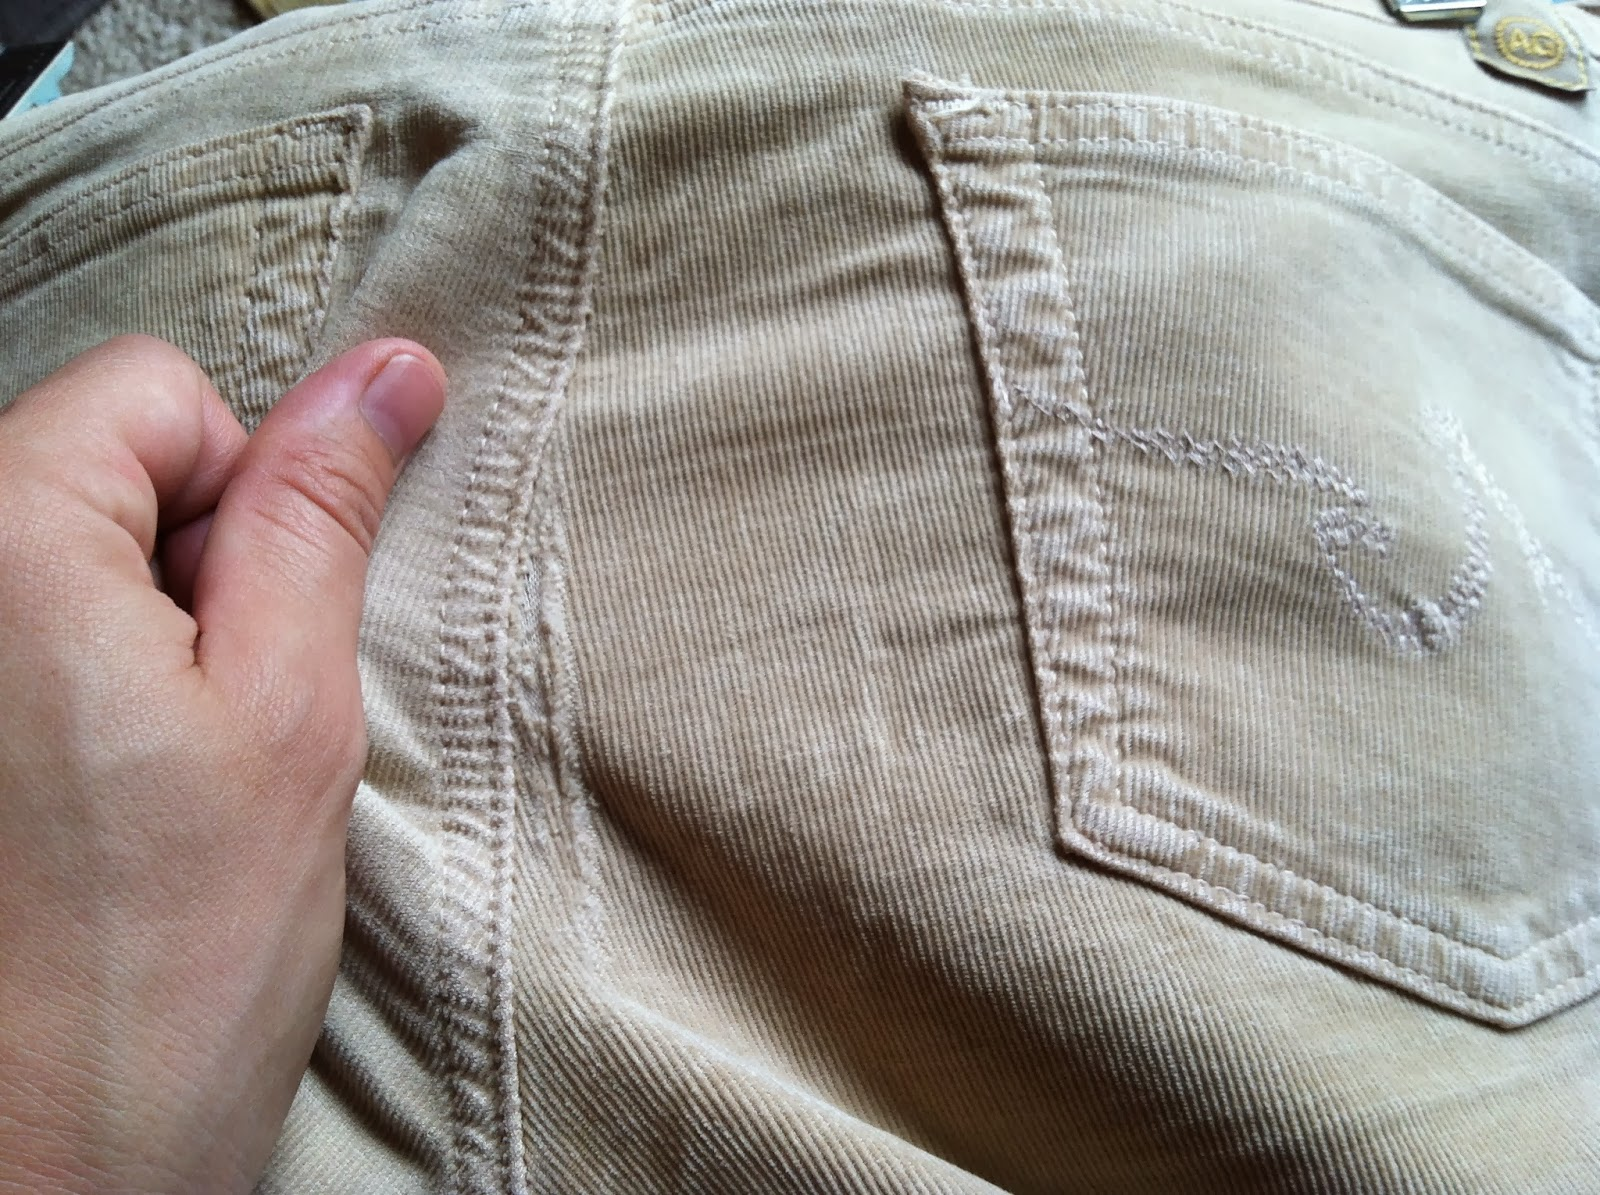 Ulterior Alterations: Elbow patches made from ripped cords